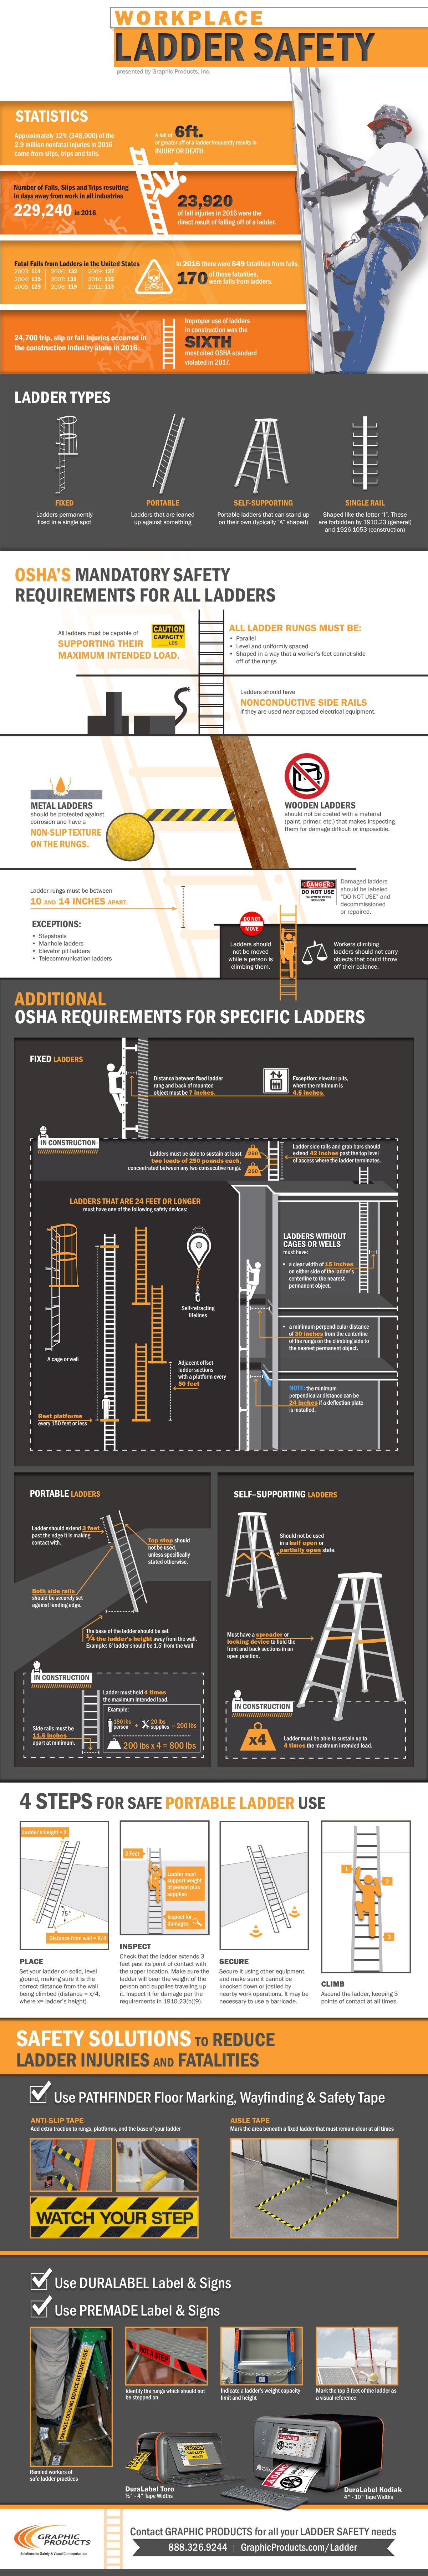 Workplace Ladder Safety #Infographic